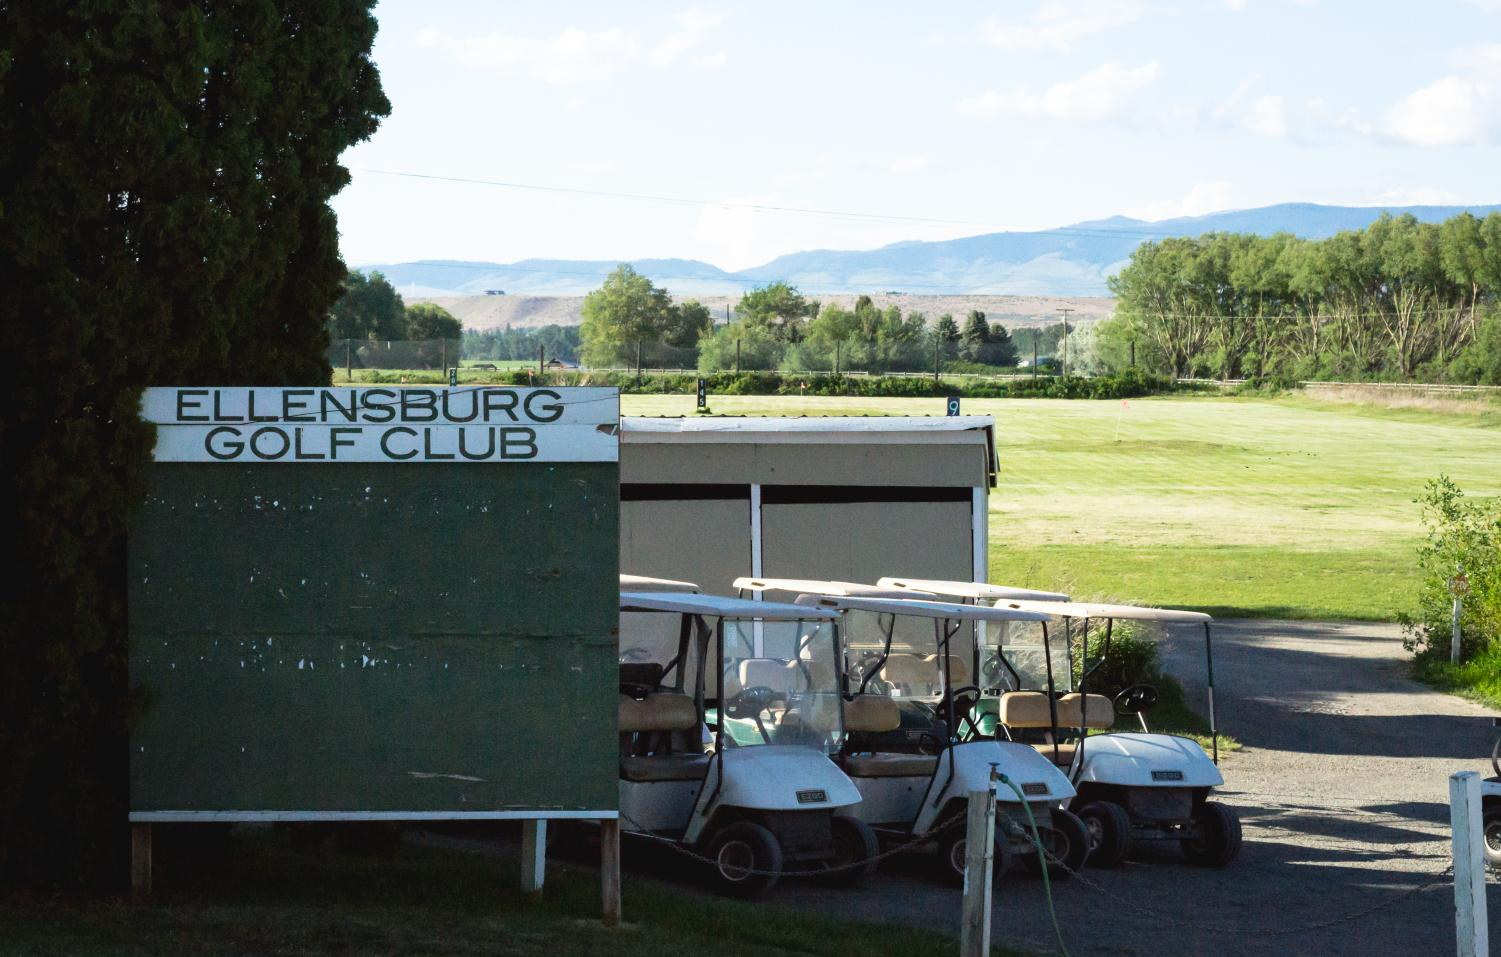 Beautiful views over-looking the driving range at the Ellensburg Golf Club.